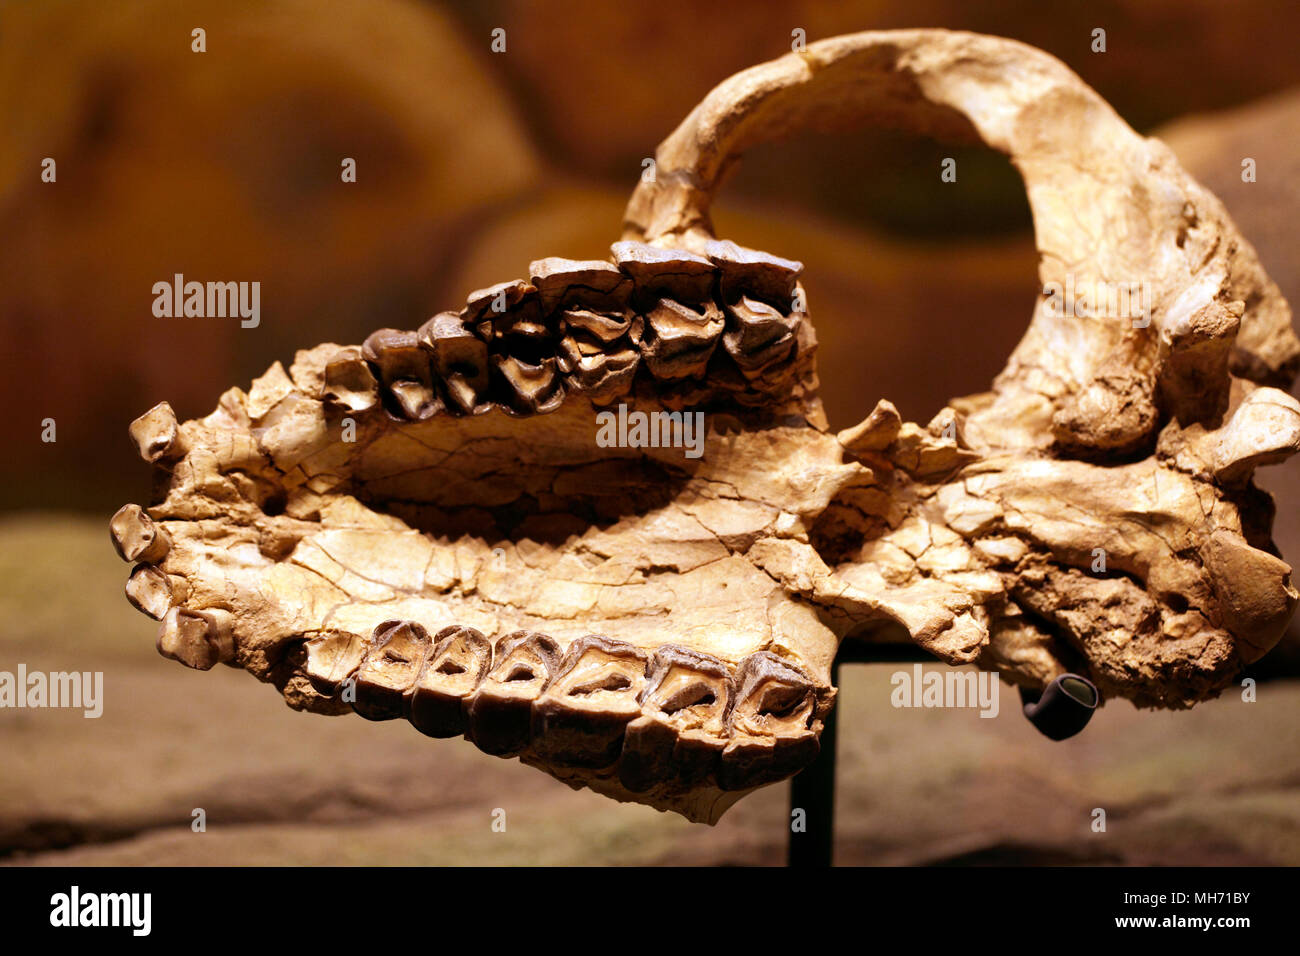 Pyrotherium teeth. extinct genus of South American ungulate or donkey fossil. Skull. - Stock Image